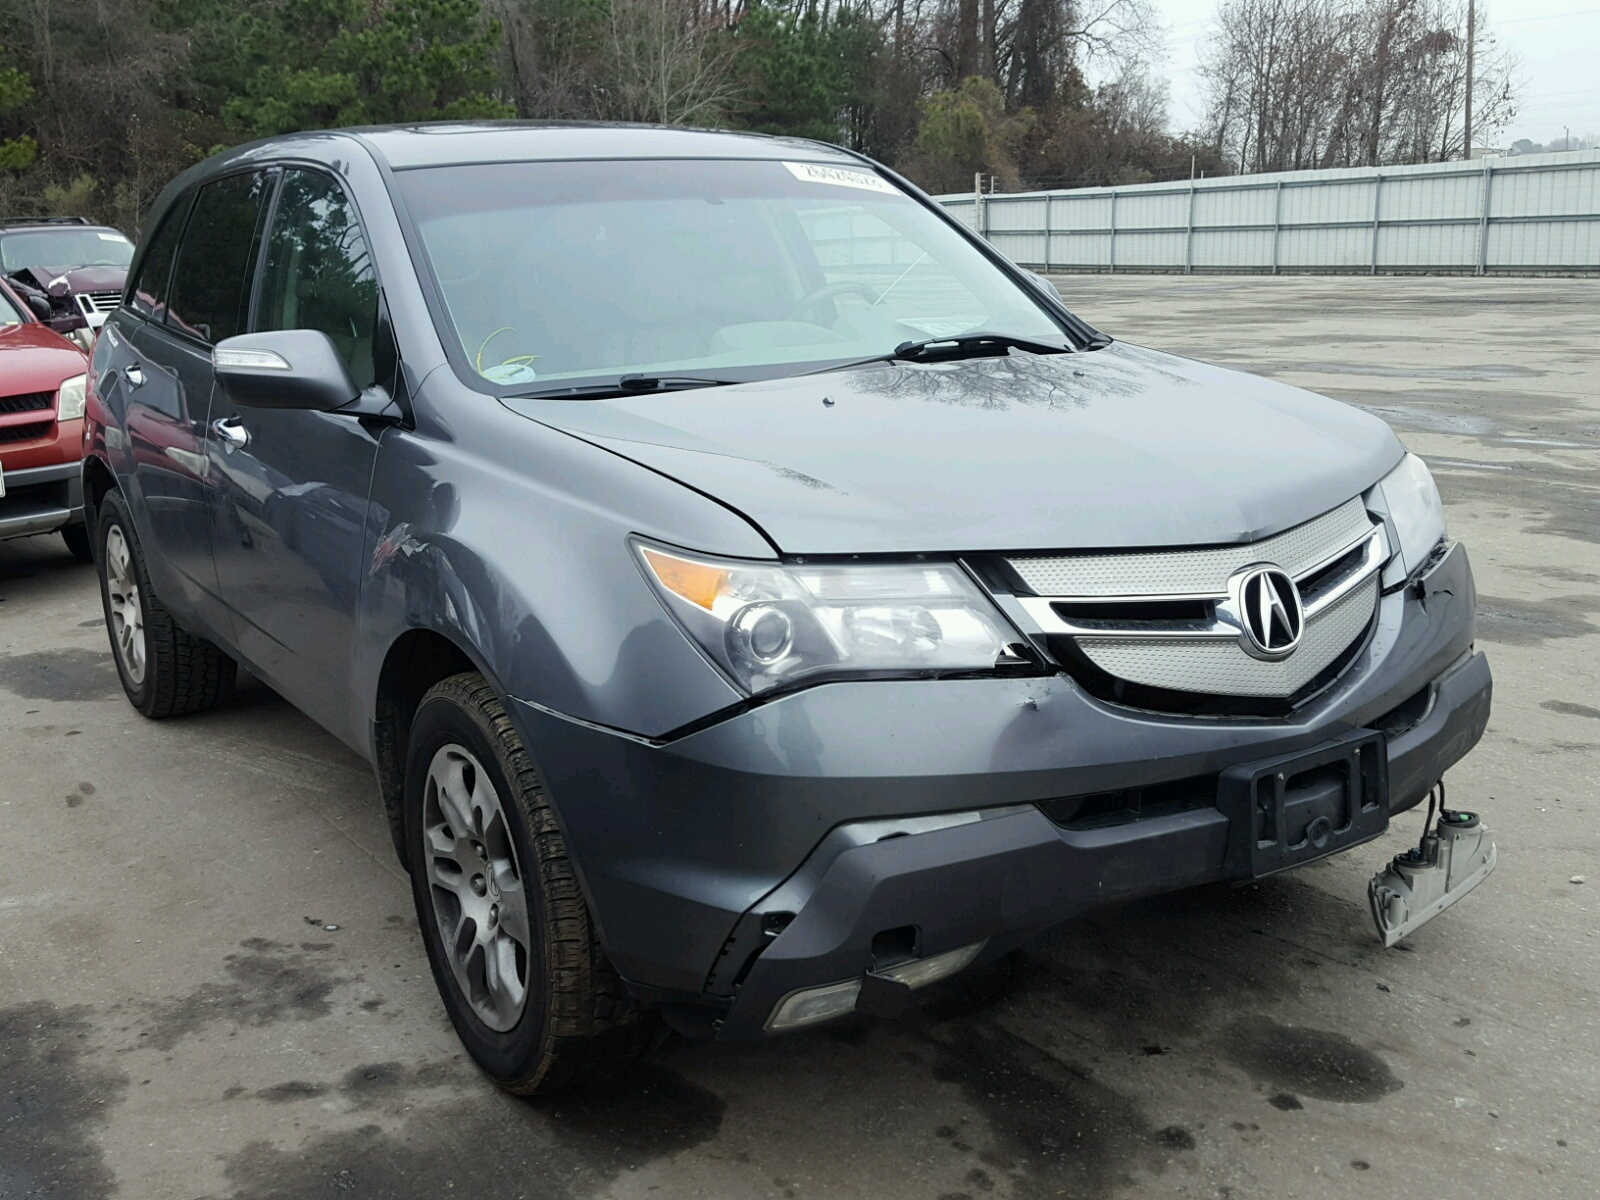 view salvage nc on carfinder auctions auto in en raleigh copart certificate title left sale techno lot for acura mdx online of charcoal